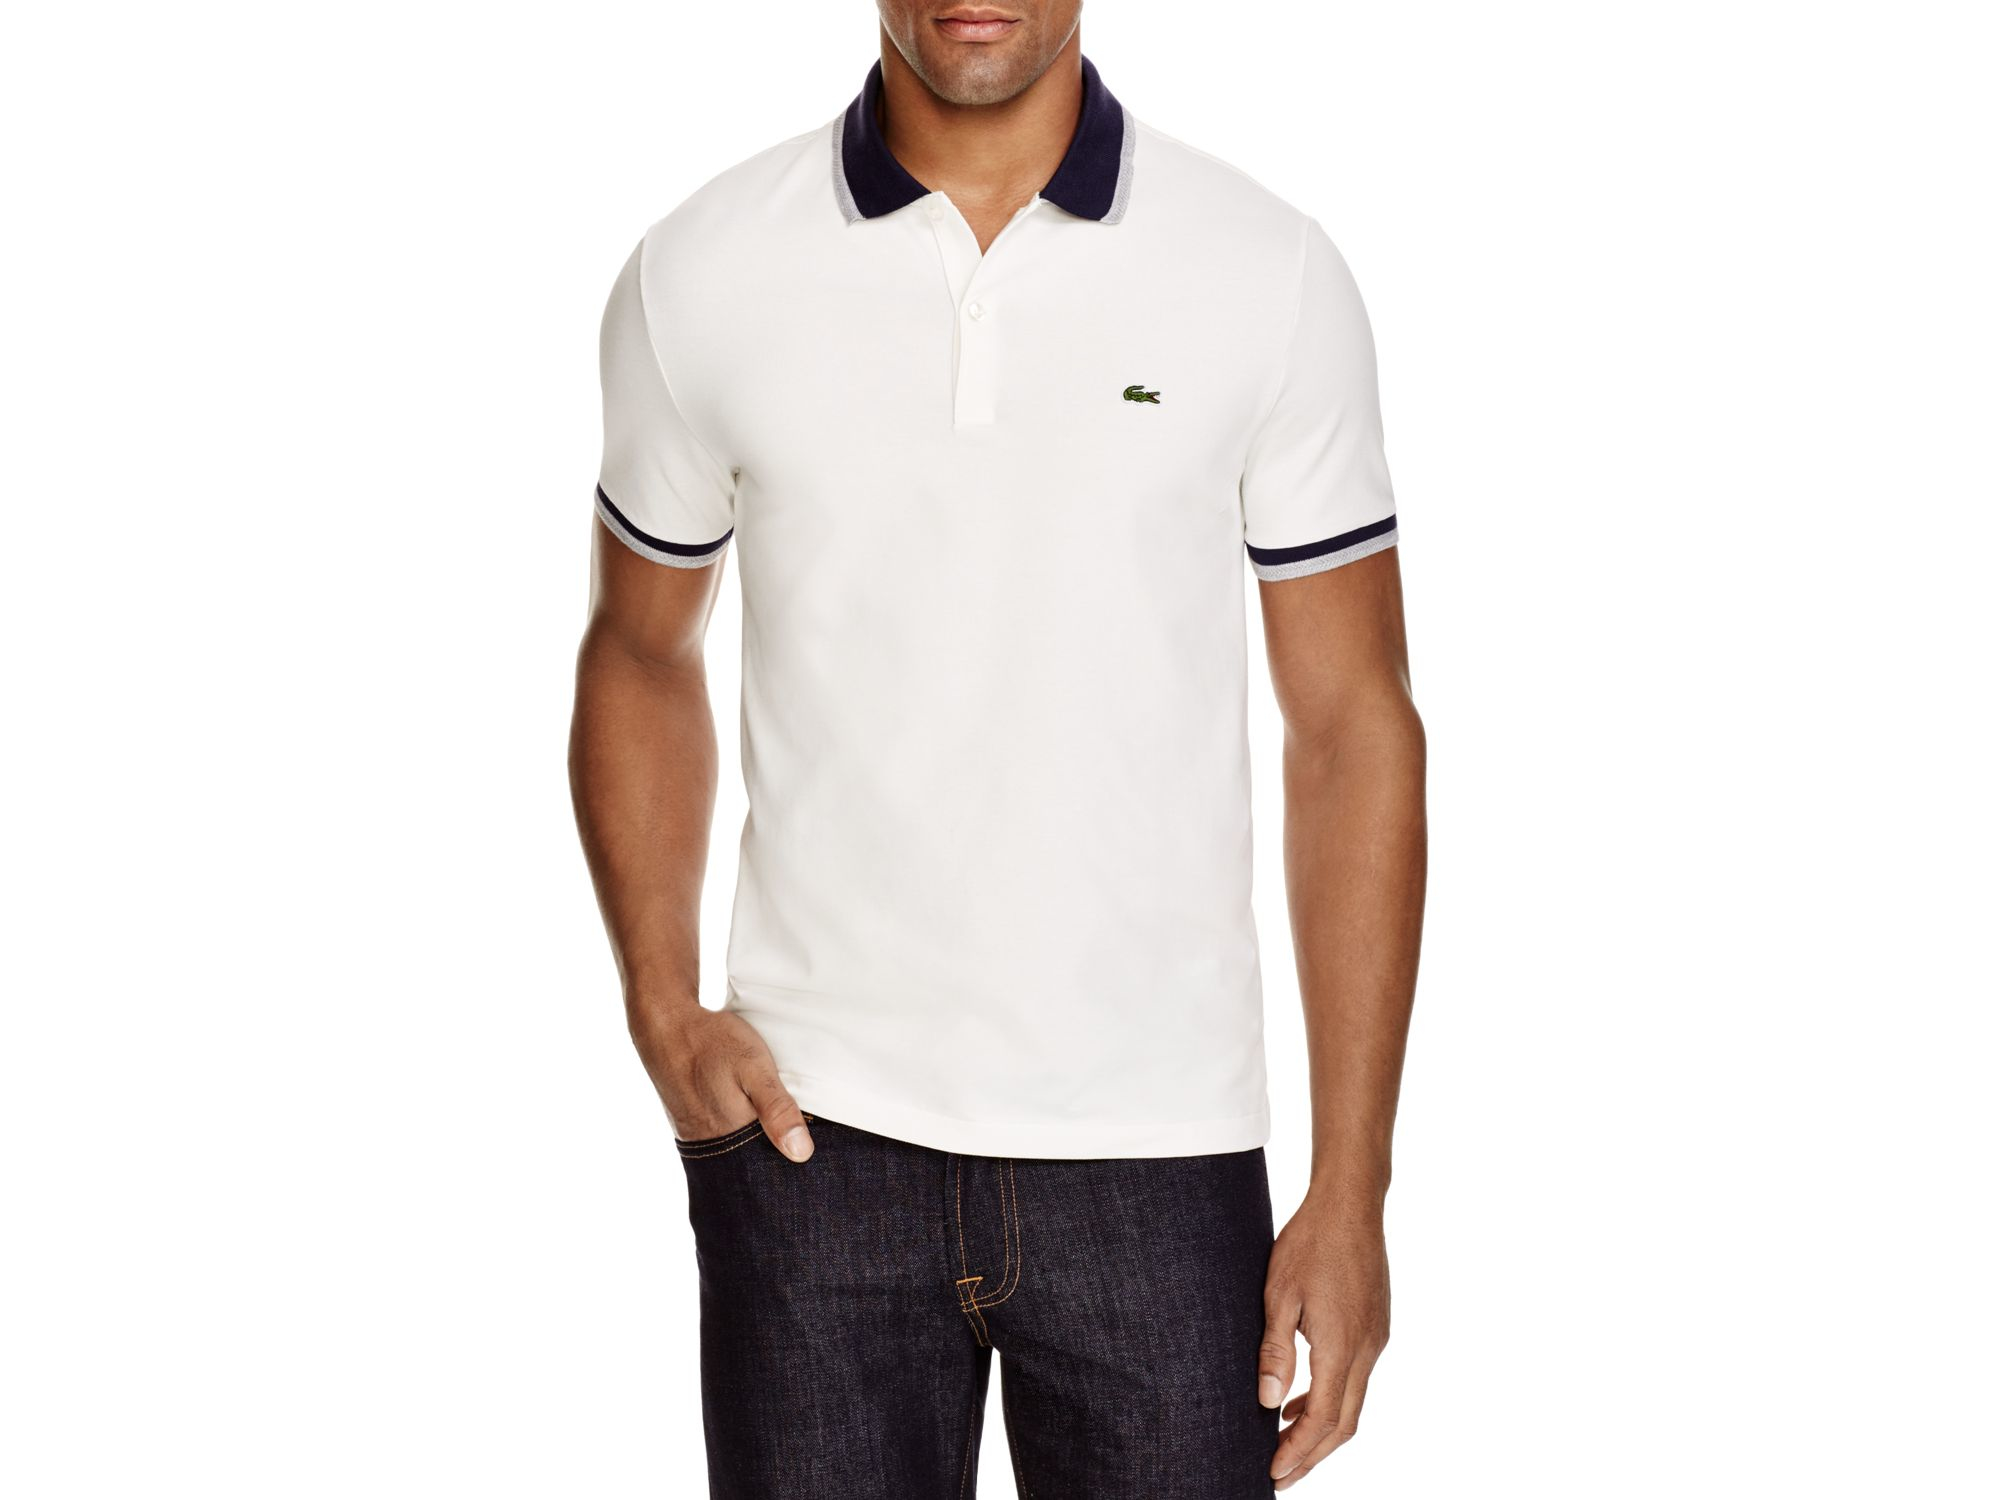 lyst lacoste stretch cotton slim fit polo in white for men. Black Bedroom Furniture Sets. Home Design Ideas